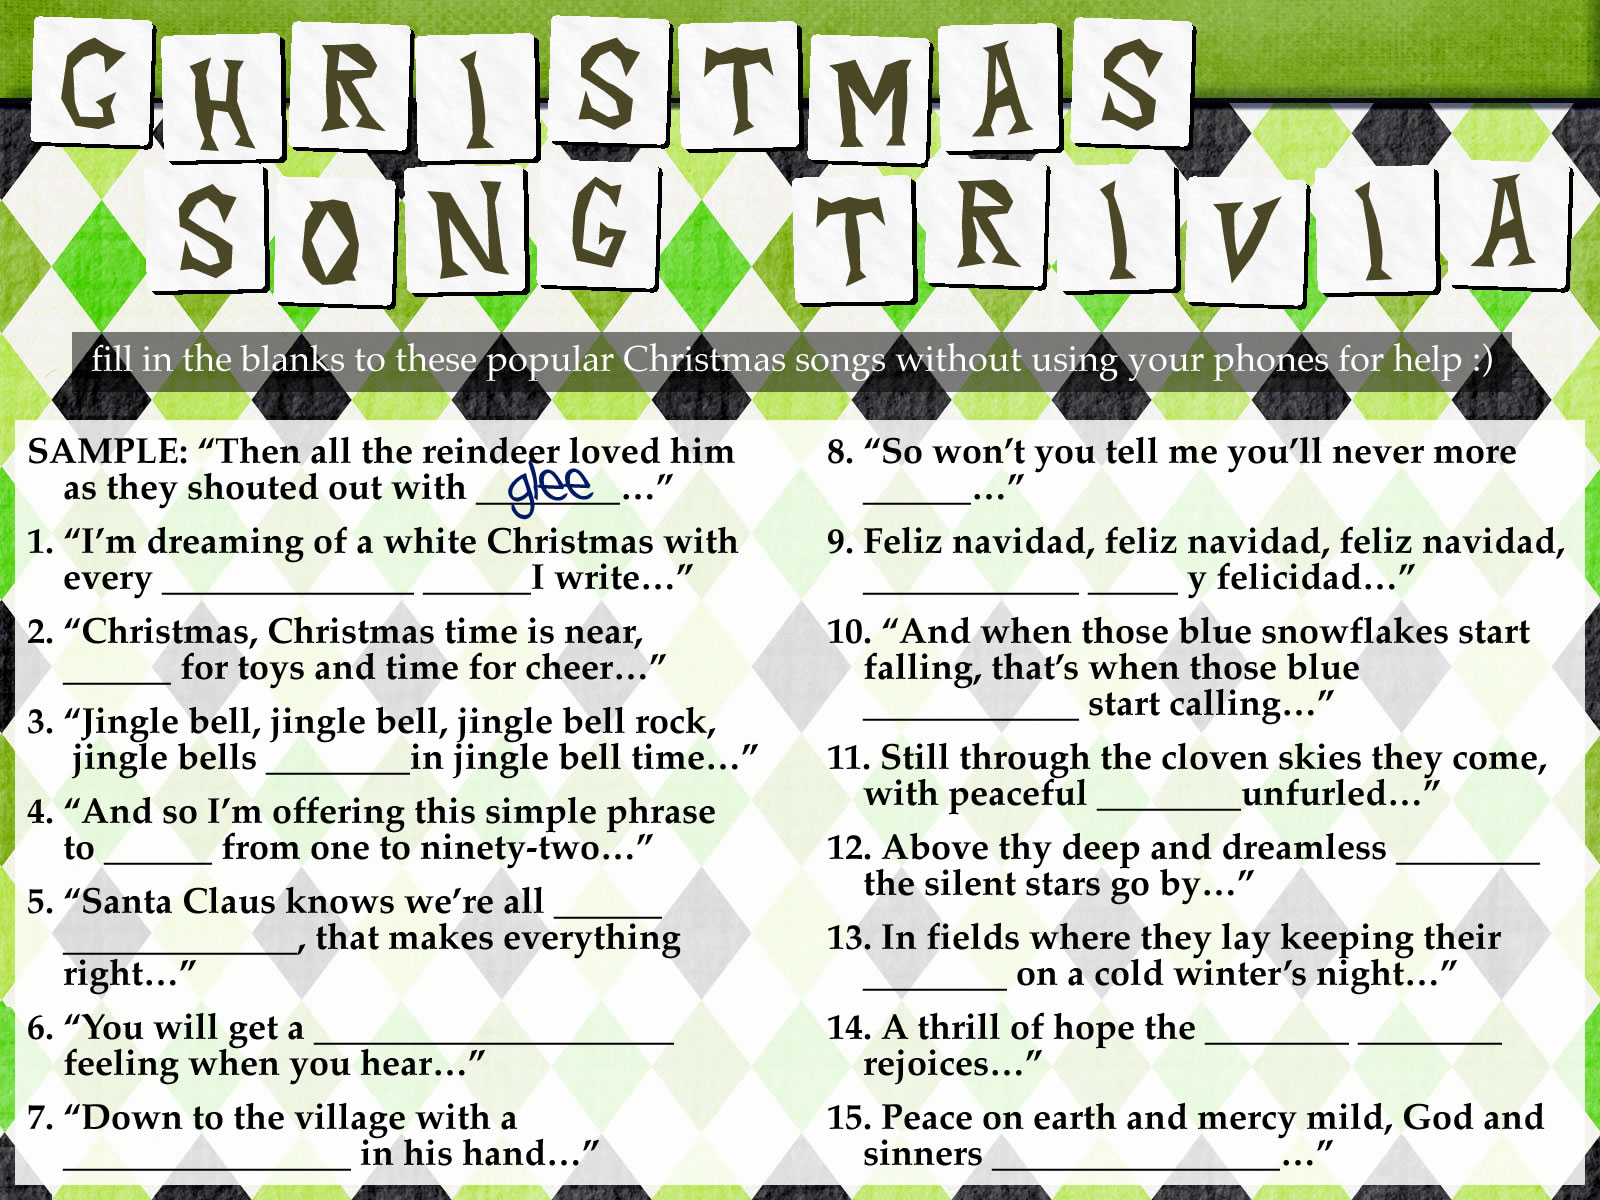 Freebie Christmas Song Trivia